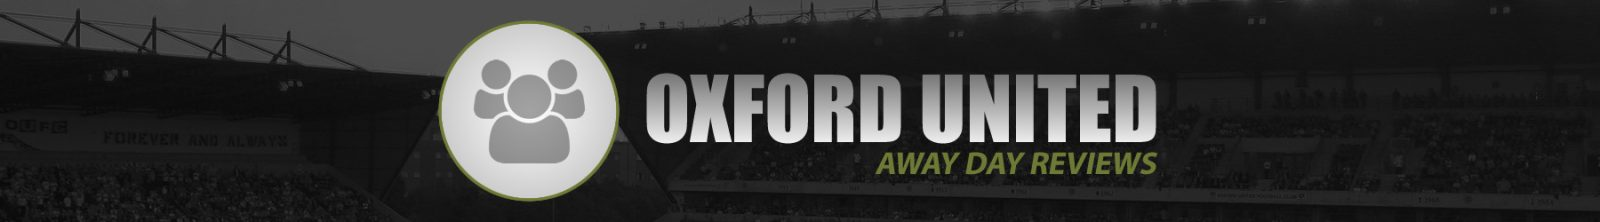 Review Oxford United